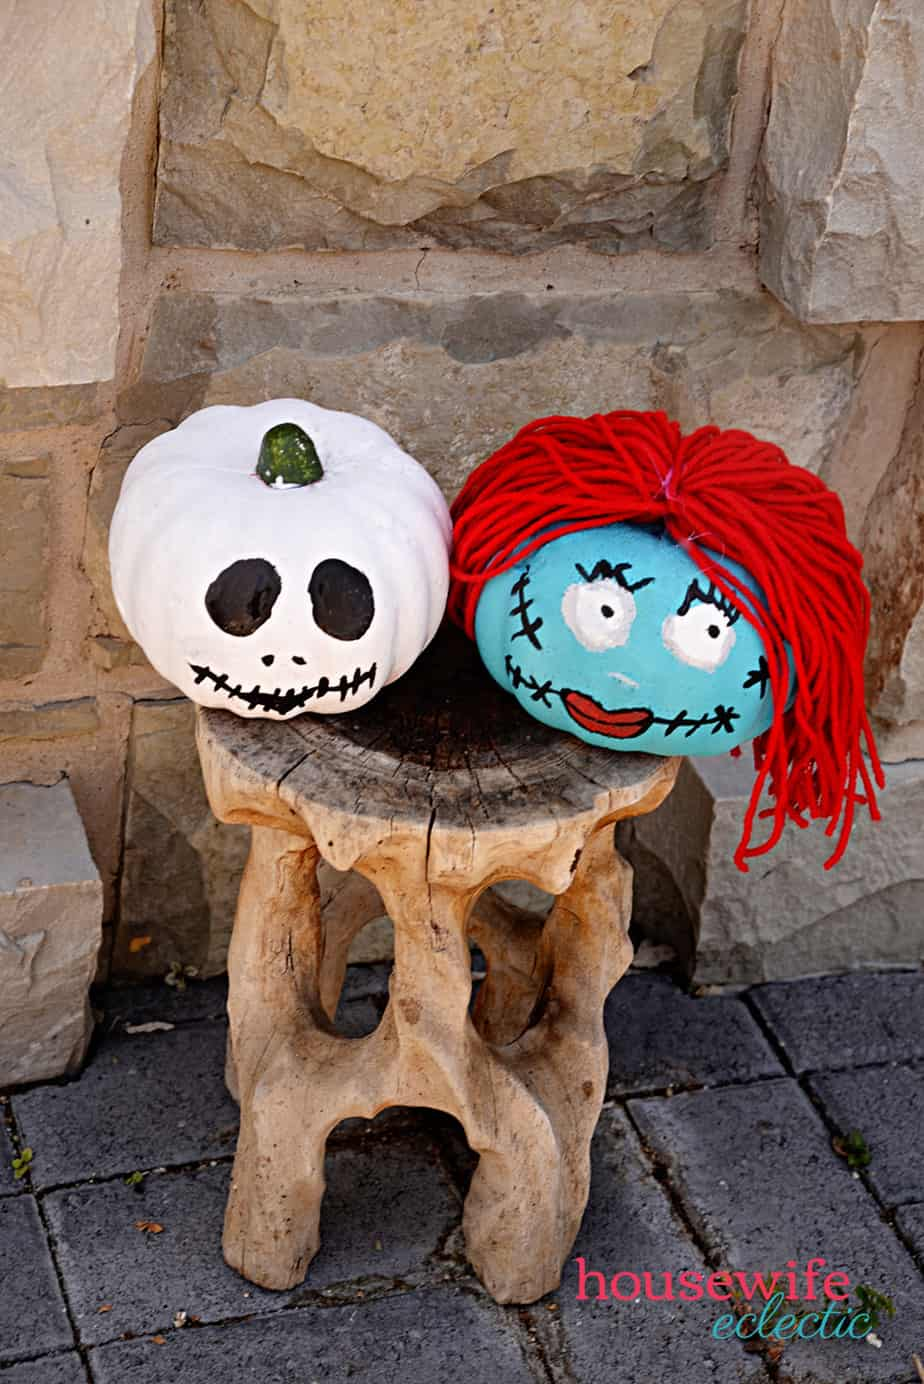 Nightmare Before Christmas Pumpkins - Housewife Eclectic